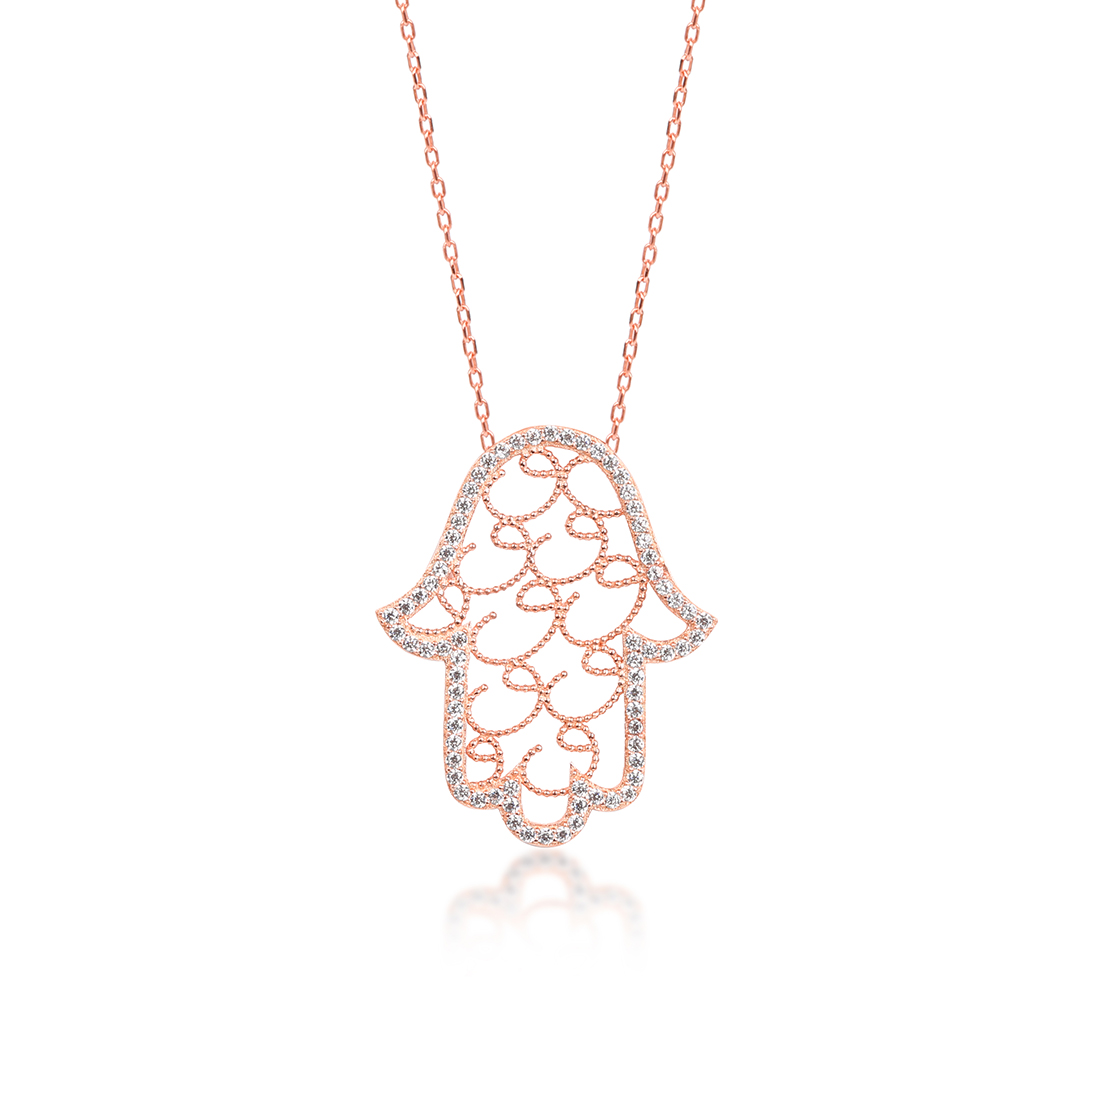 Waw Hand Khailo Rose Necklace - High Street Jewelry